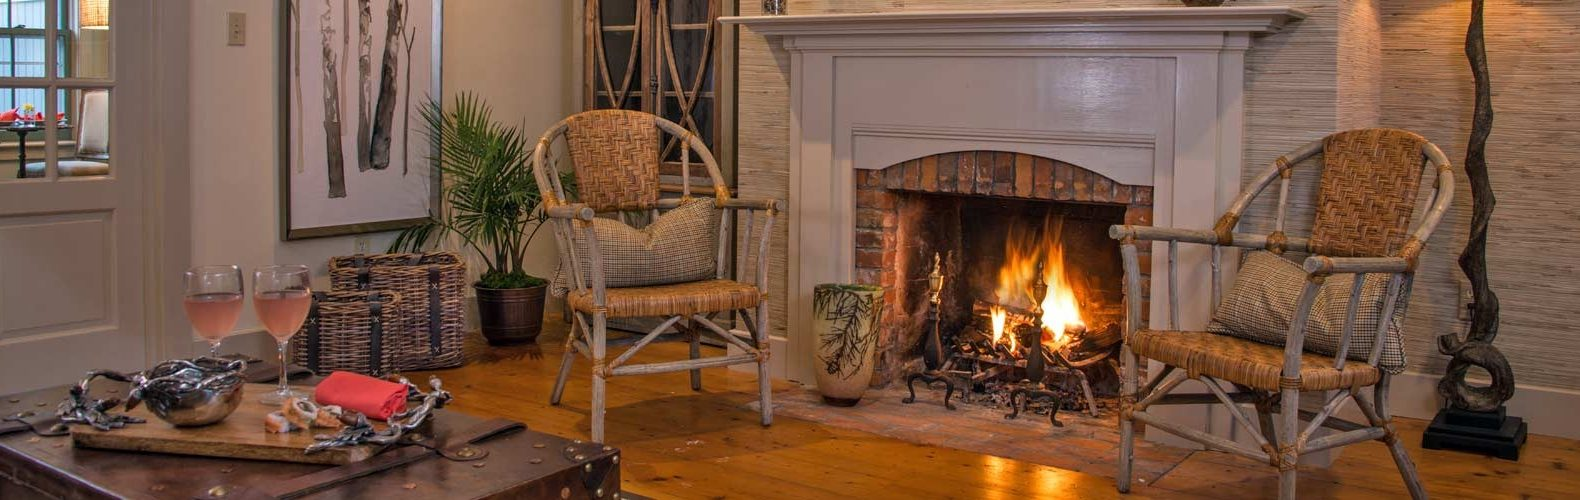 Pleasing Bed And Breakfast In Woodstock Vt Directions Deer Brook Inn Interior Design Ideas Apansoteloinfo